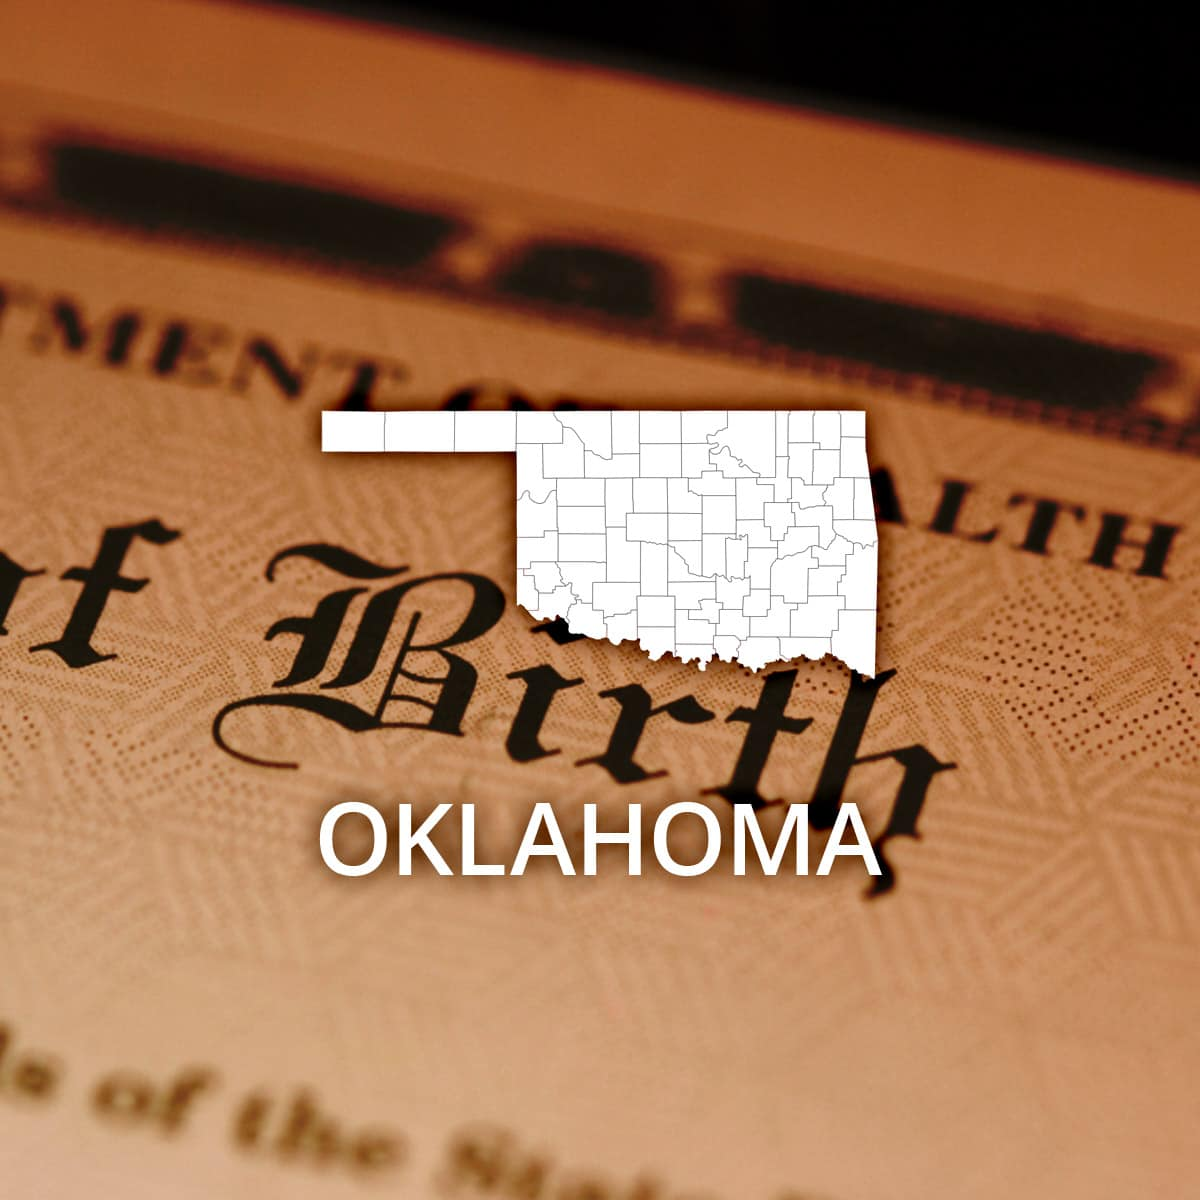 Where to Obtain an Oklahoma Birth Certificate